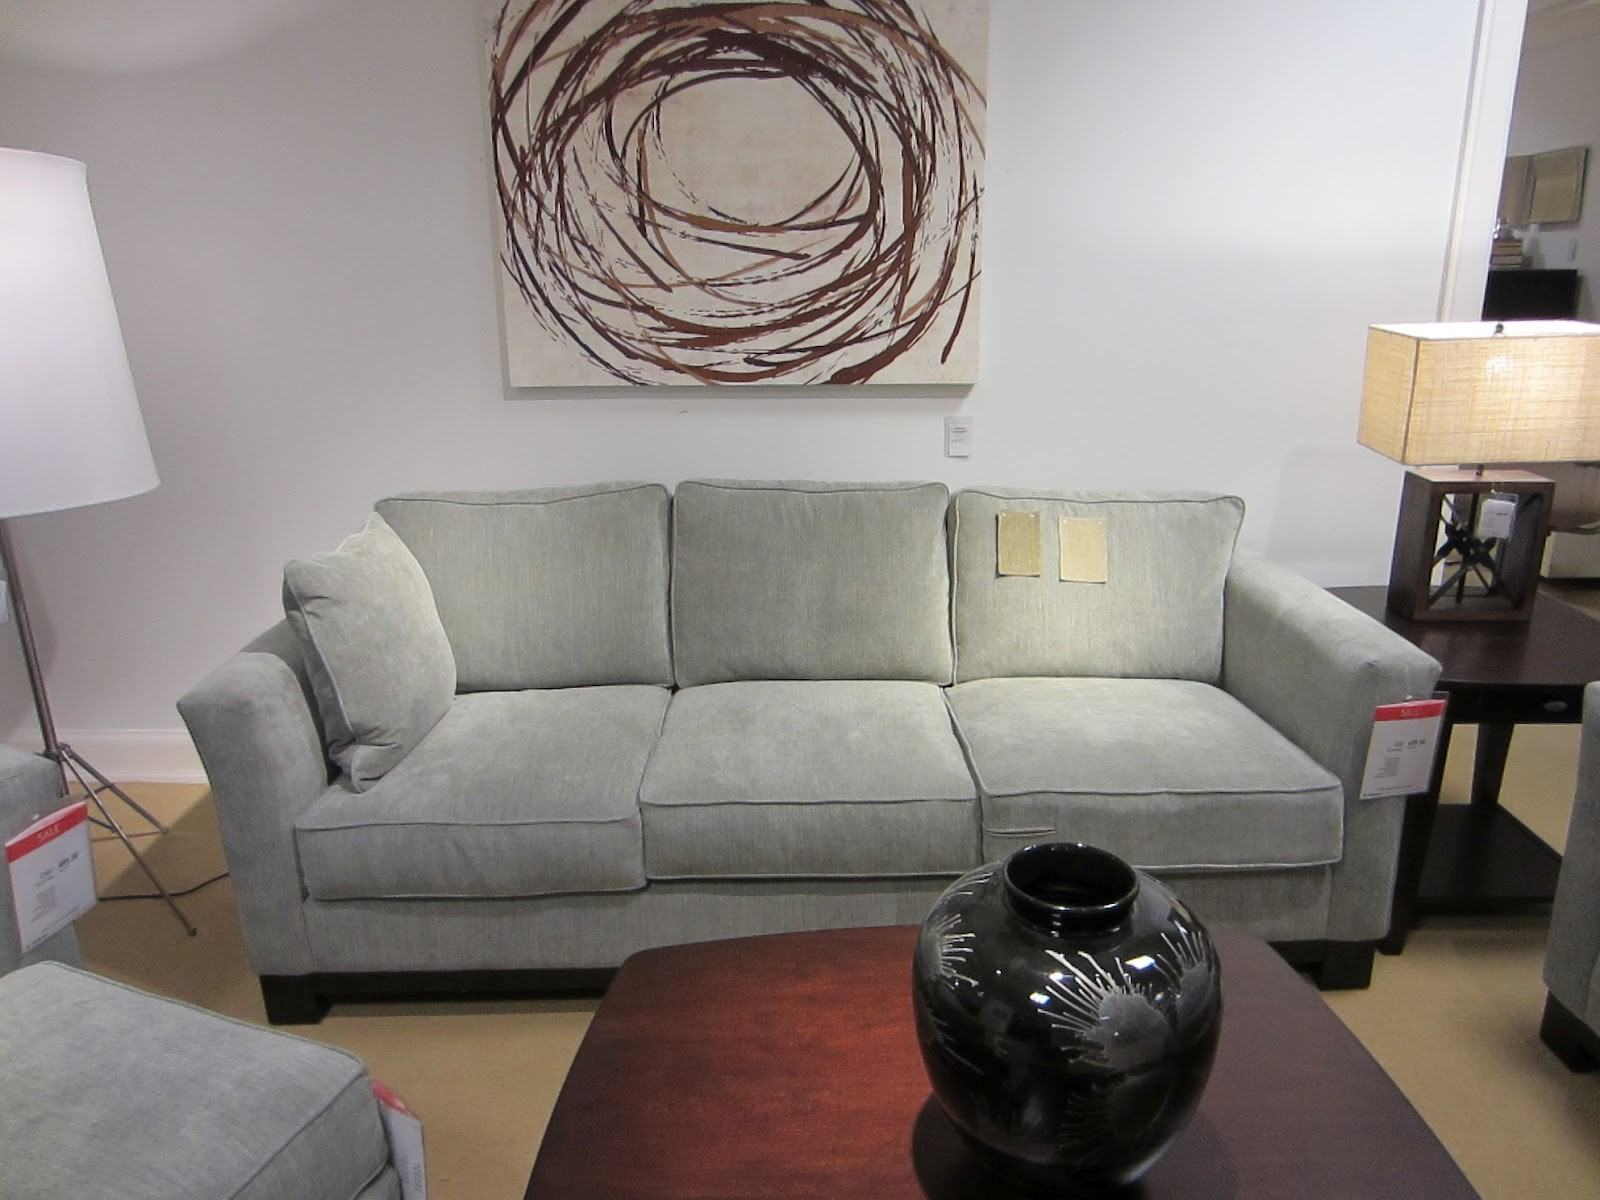 Macys Kenton sofa Fascinating Apartment Furniture We Found Our Couch the Splendid Guide Photograph